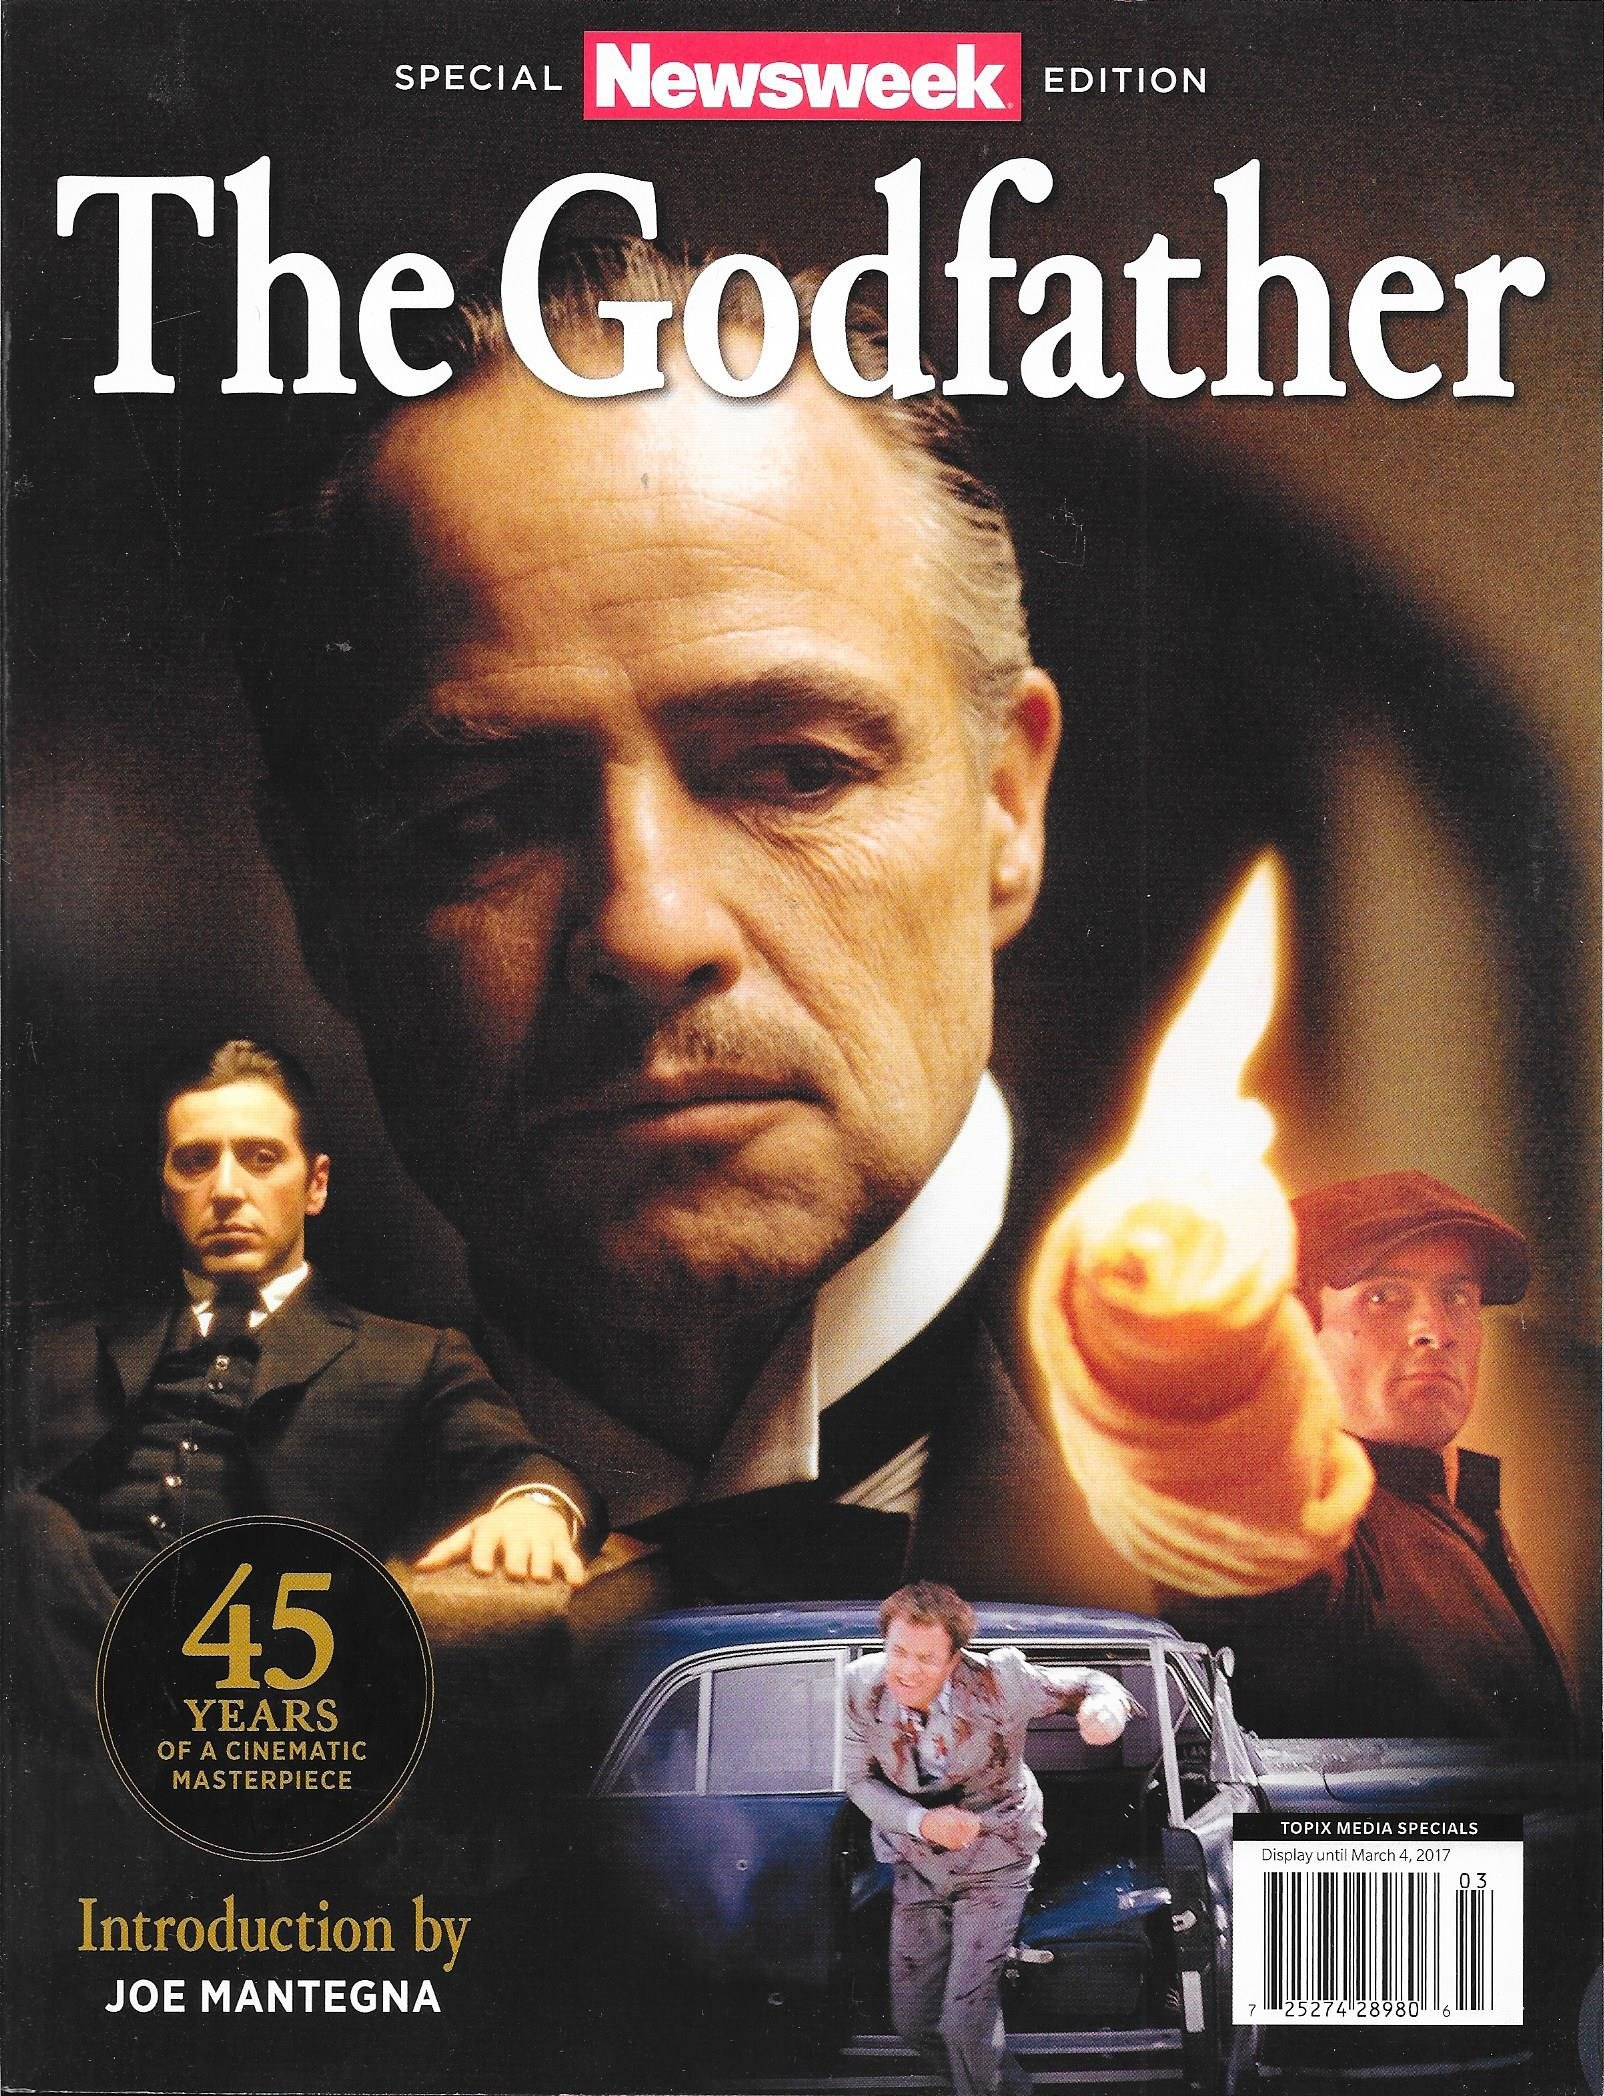 The Godfather 45th Anniversary of a Cinematic Masterpiece PDF